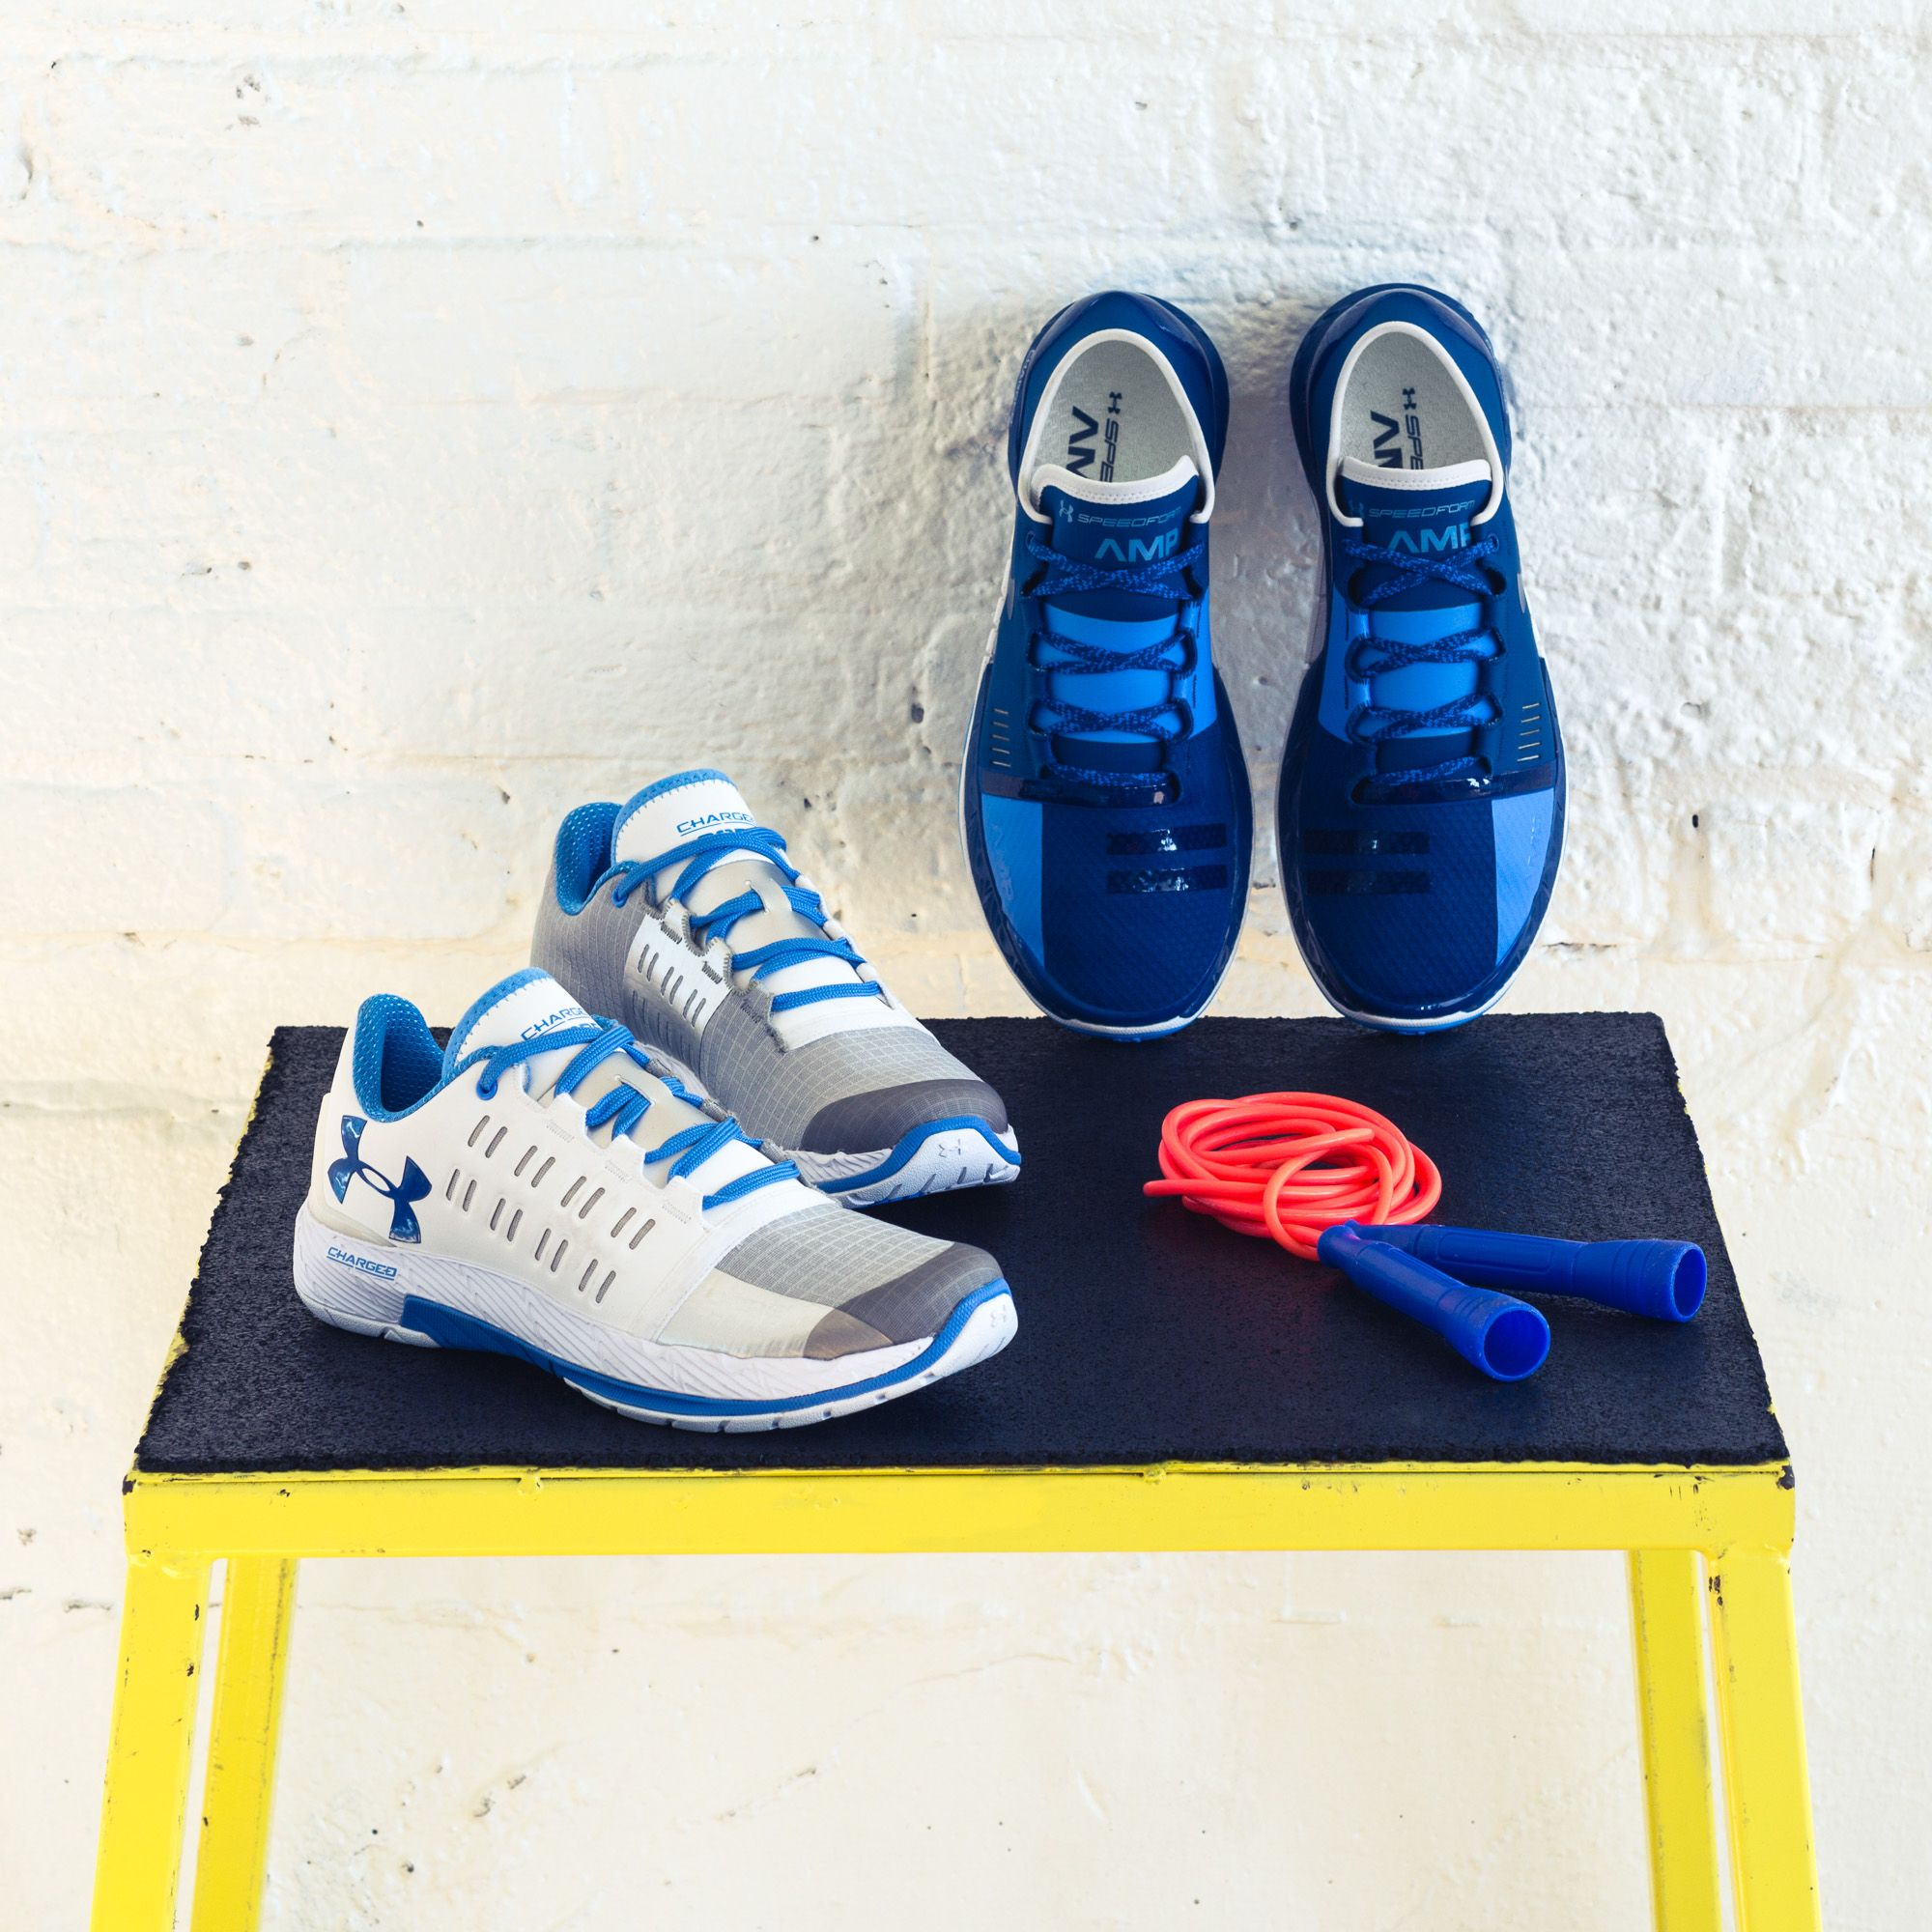 outlet store 4c05c 130f4 A sweat session awaits. The UA Charged Core and Speedform ...